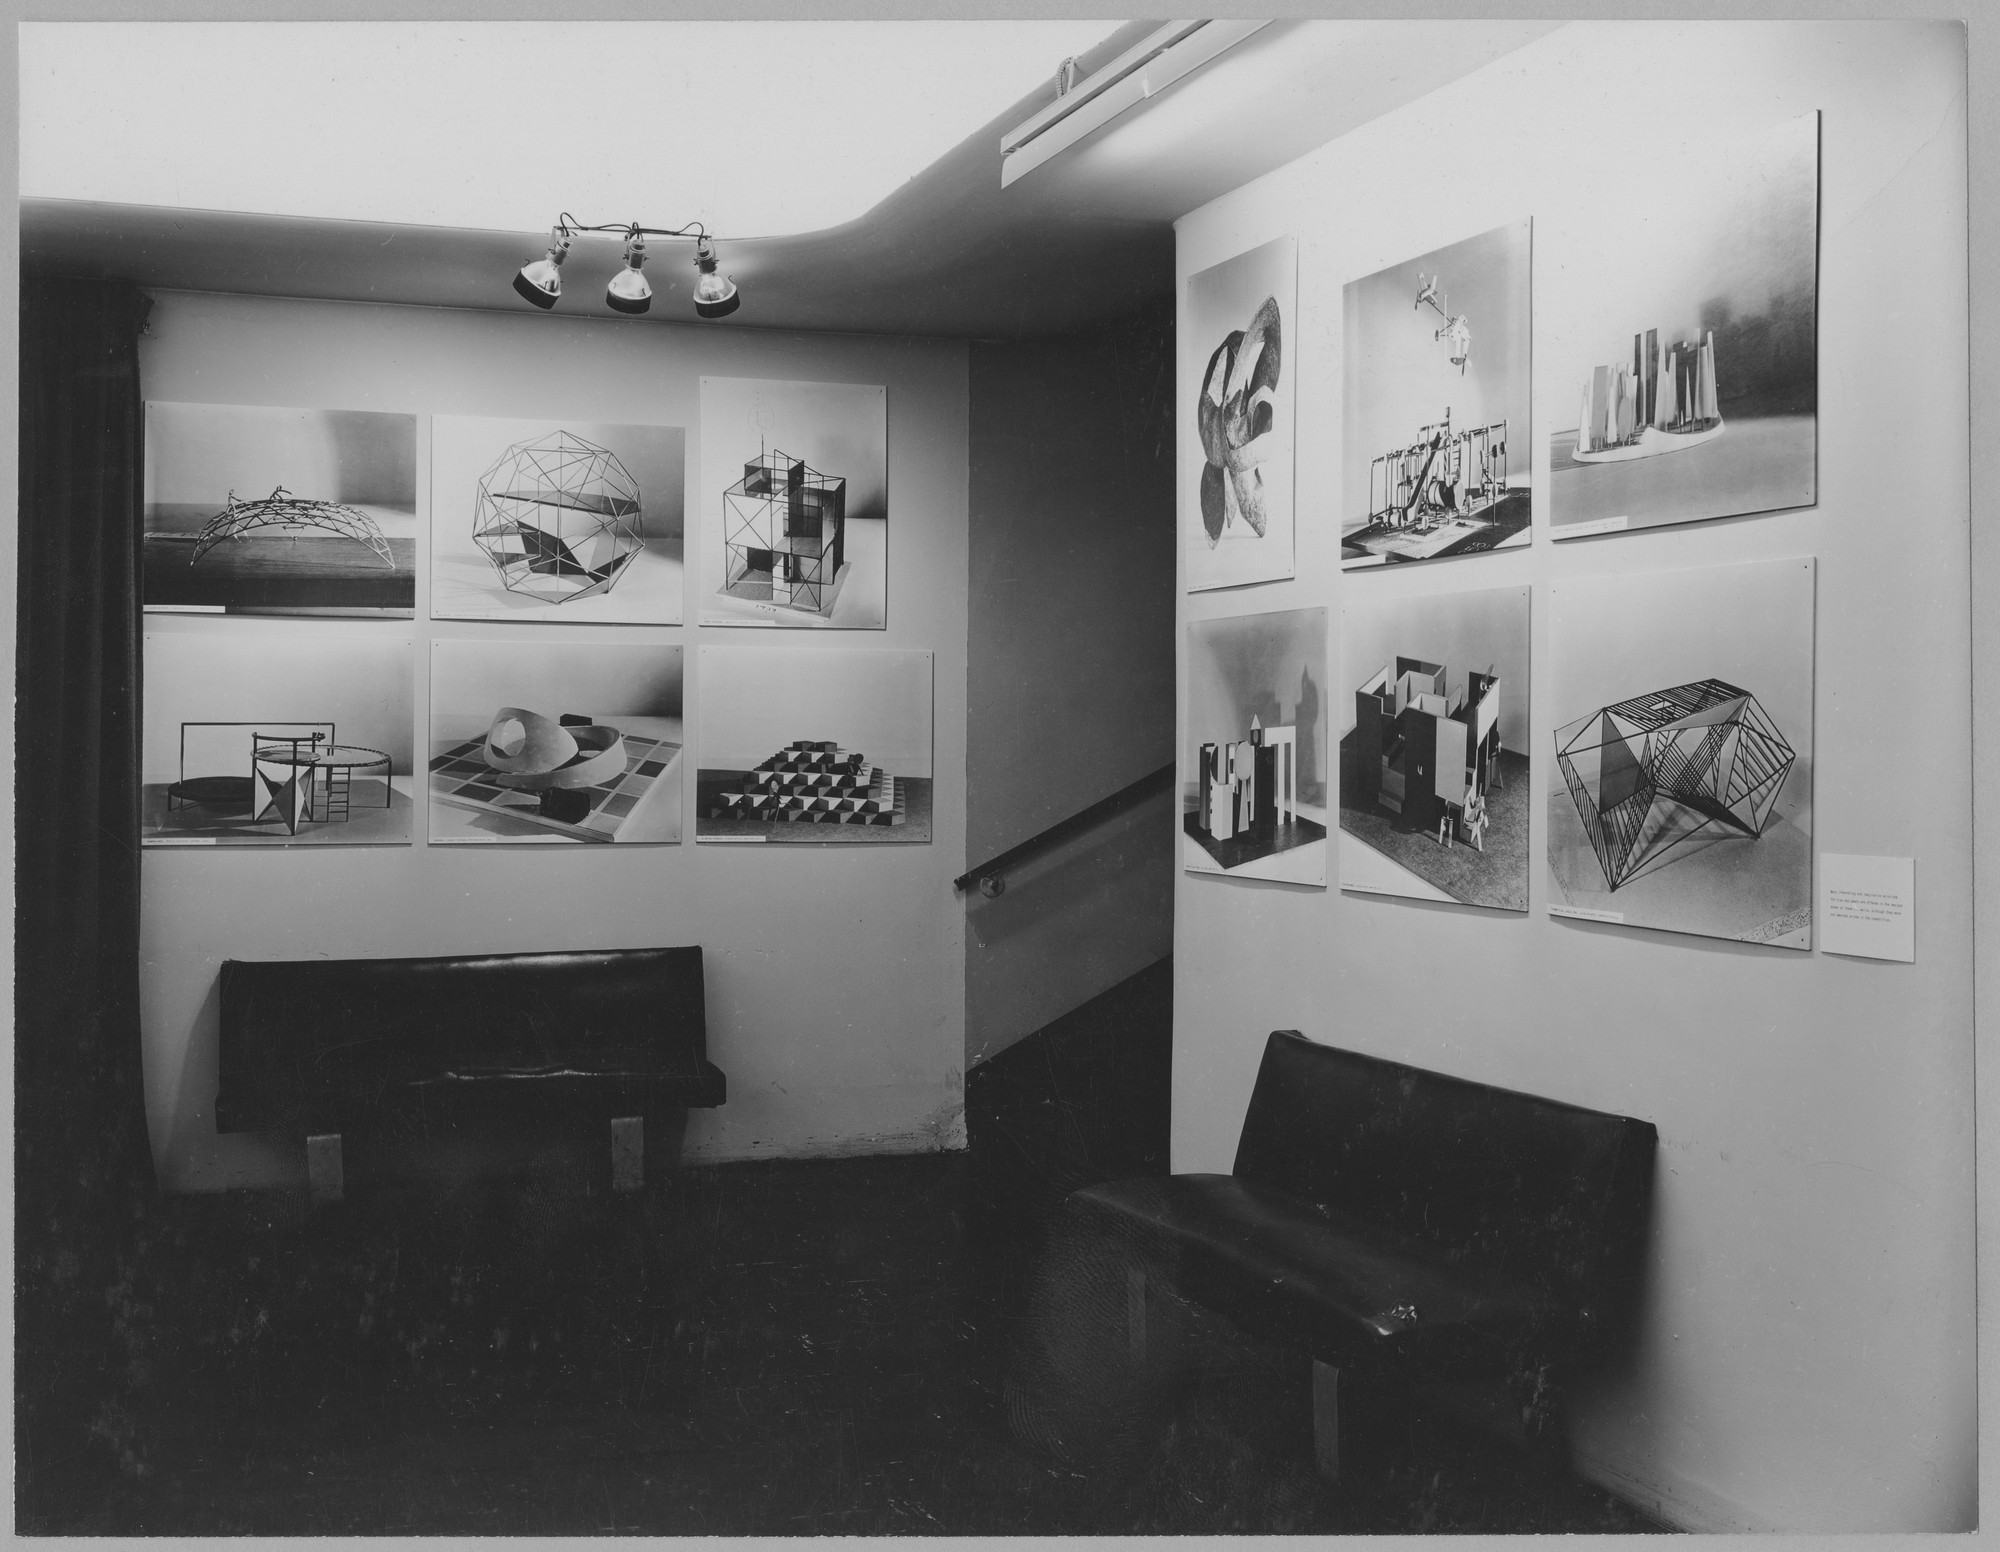 "Installation view of the exhibition, ""Playground Sculpture."" June 30, 1954–August 22, 1954. Photographic Archive. The Museum of Modern Art Archives, New York. IN562.1. Photograph by Soichi Sunami."